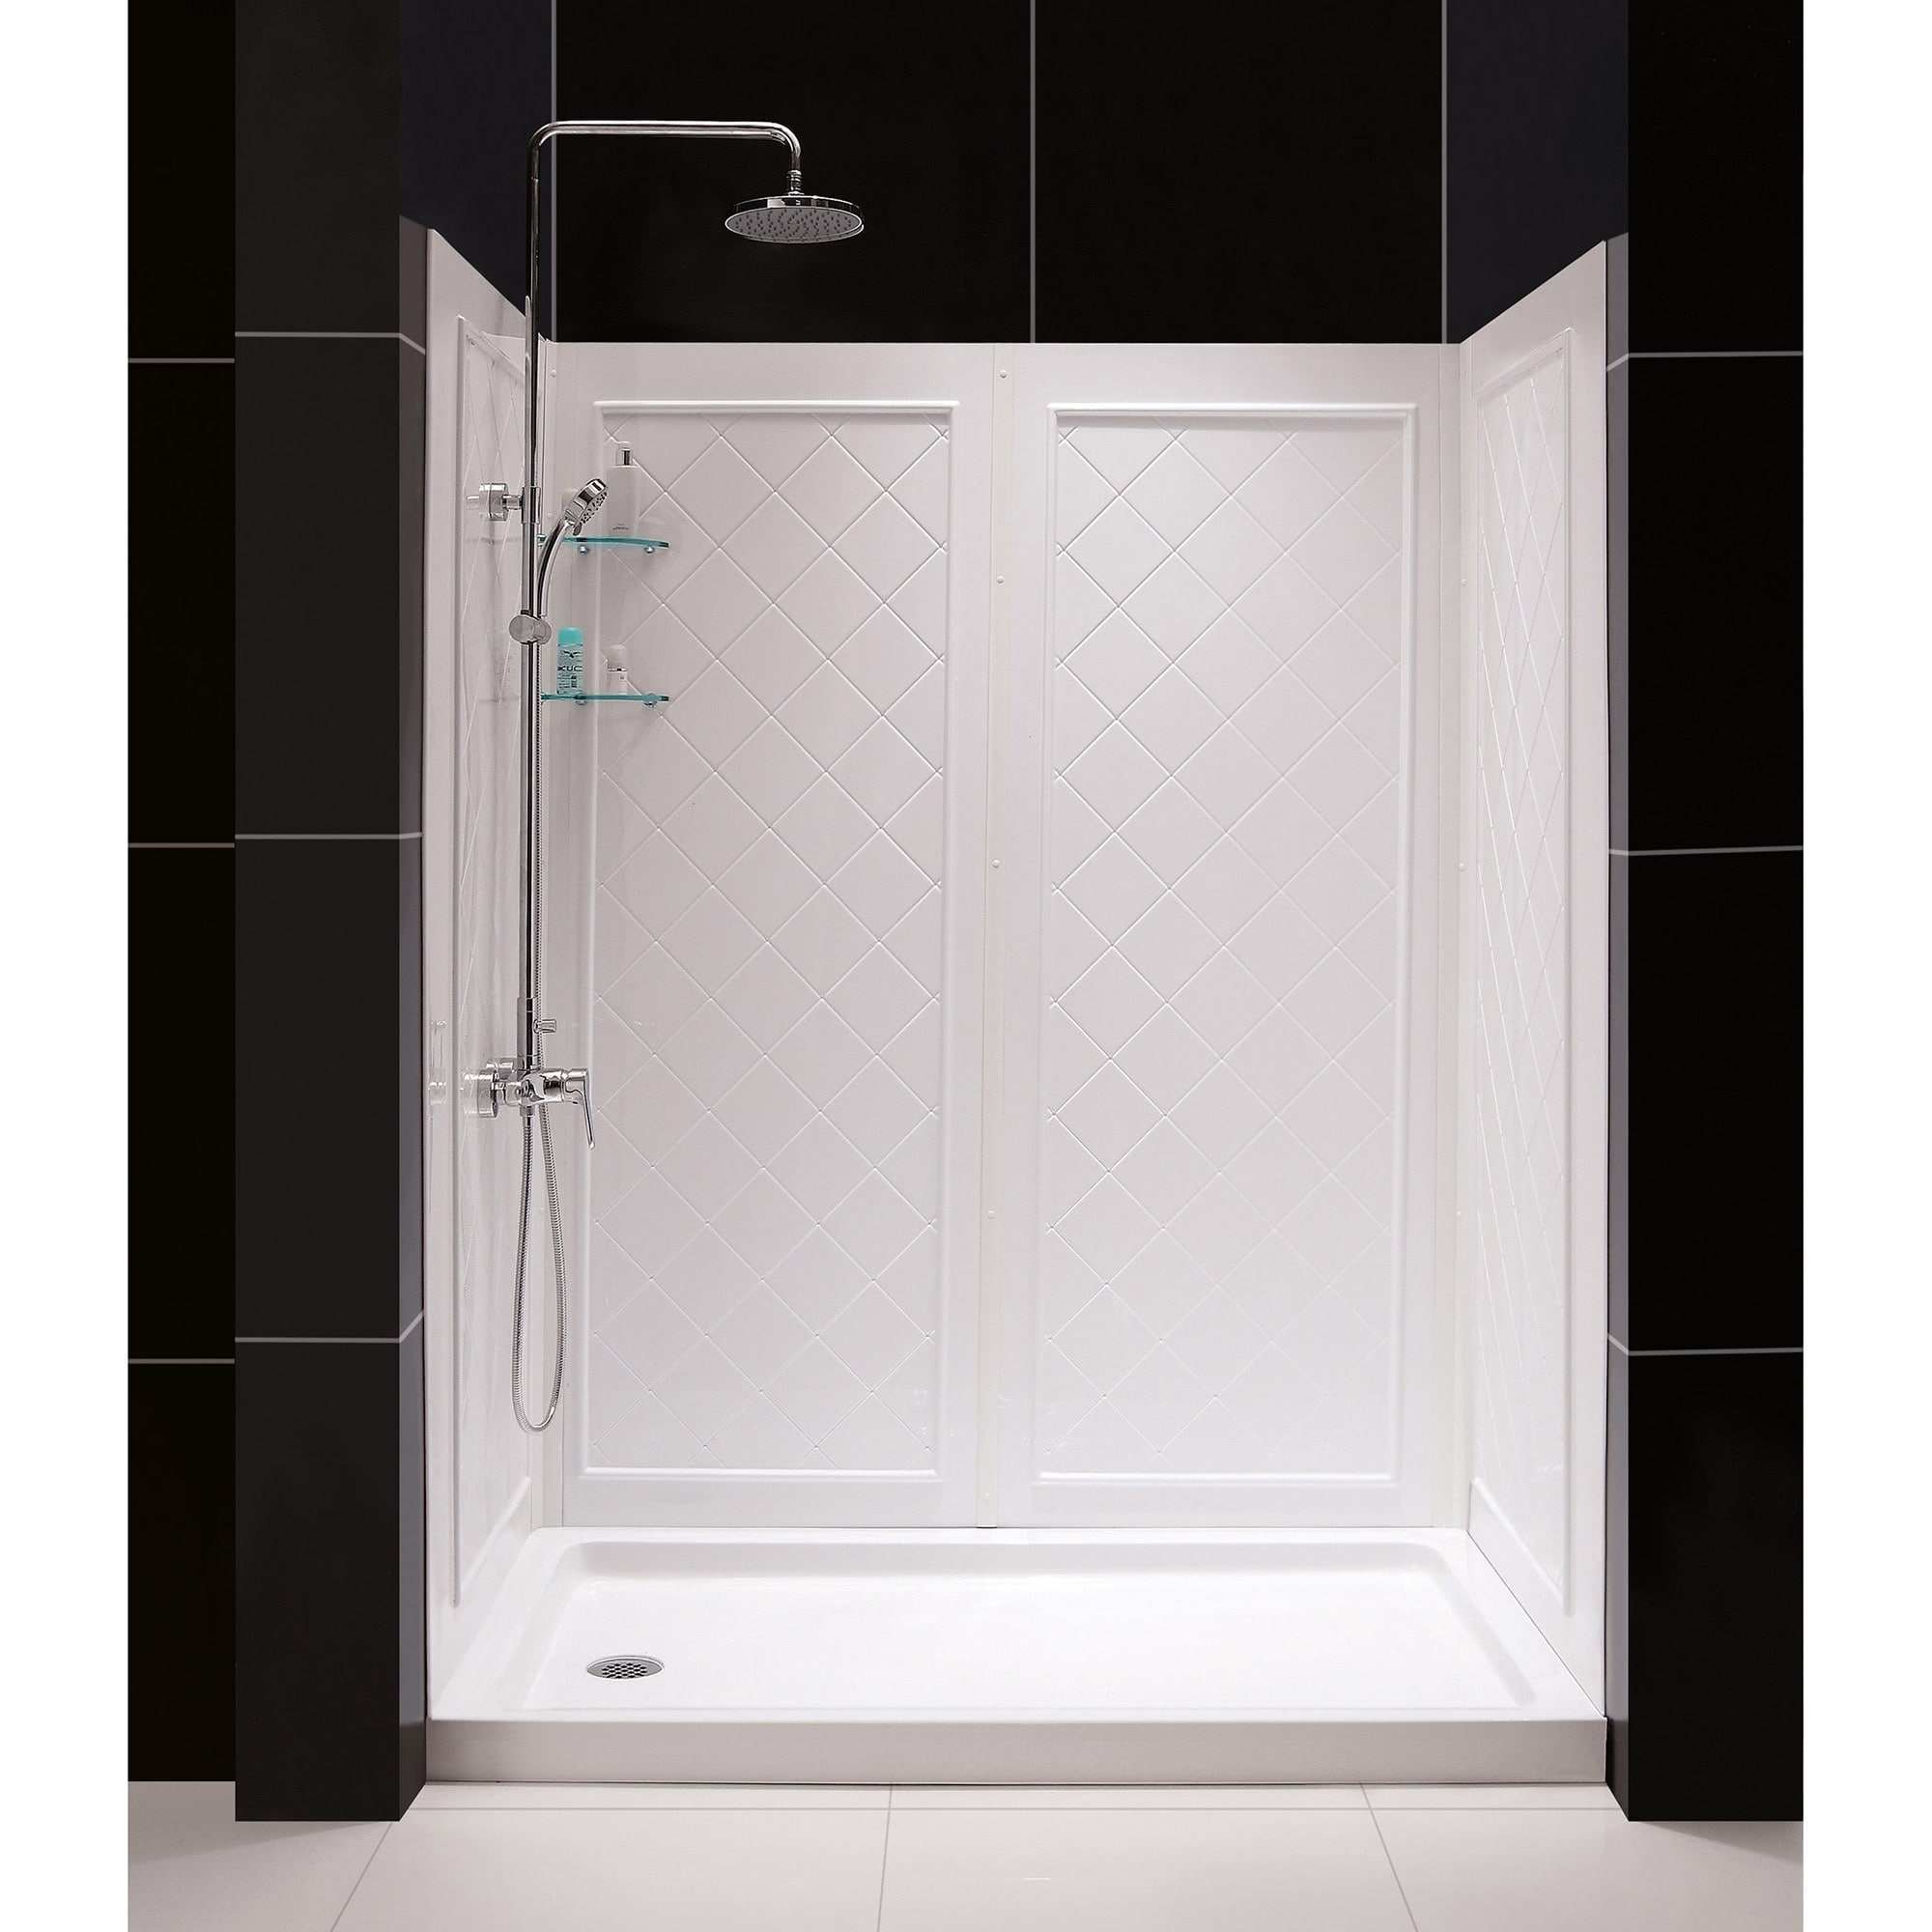 Dreamline Flex 34 In D X 60 In W X 76 3 4 In H Semi Frameless Pivot Shower Door Slimline Shower Base And Backwall Kit